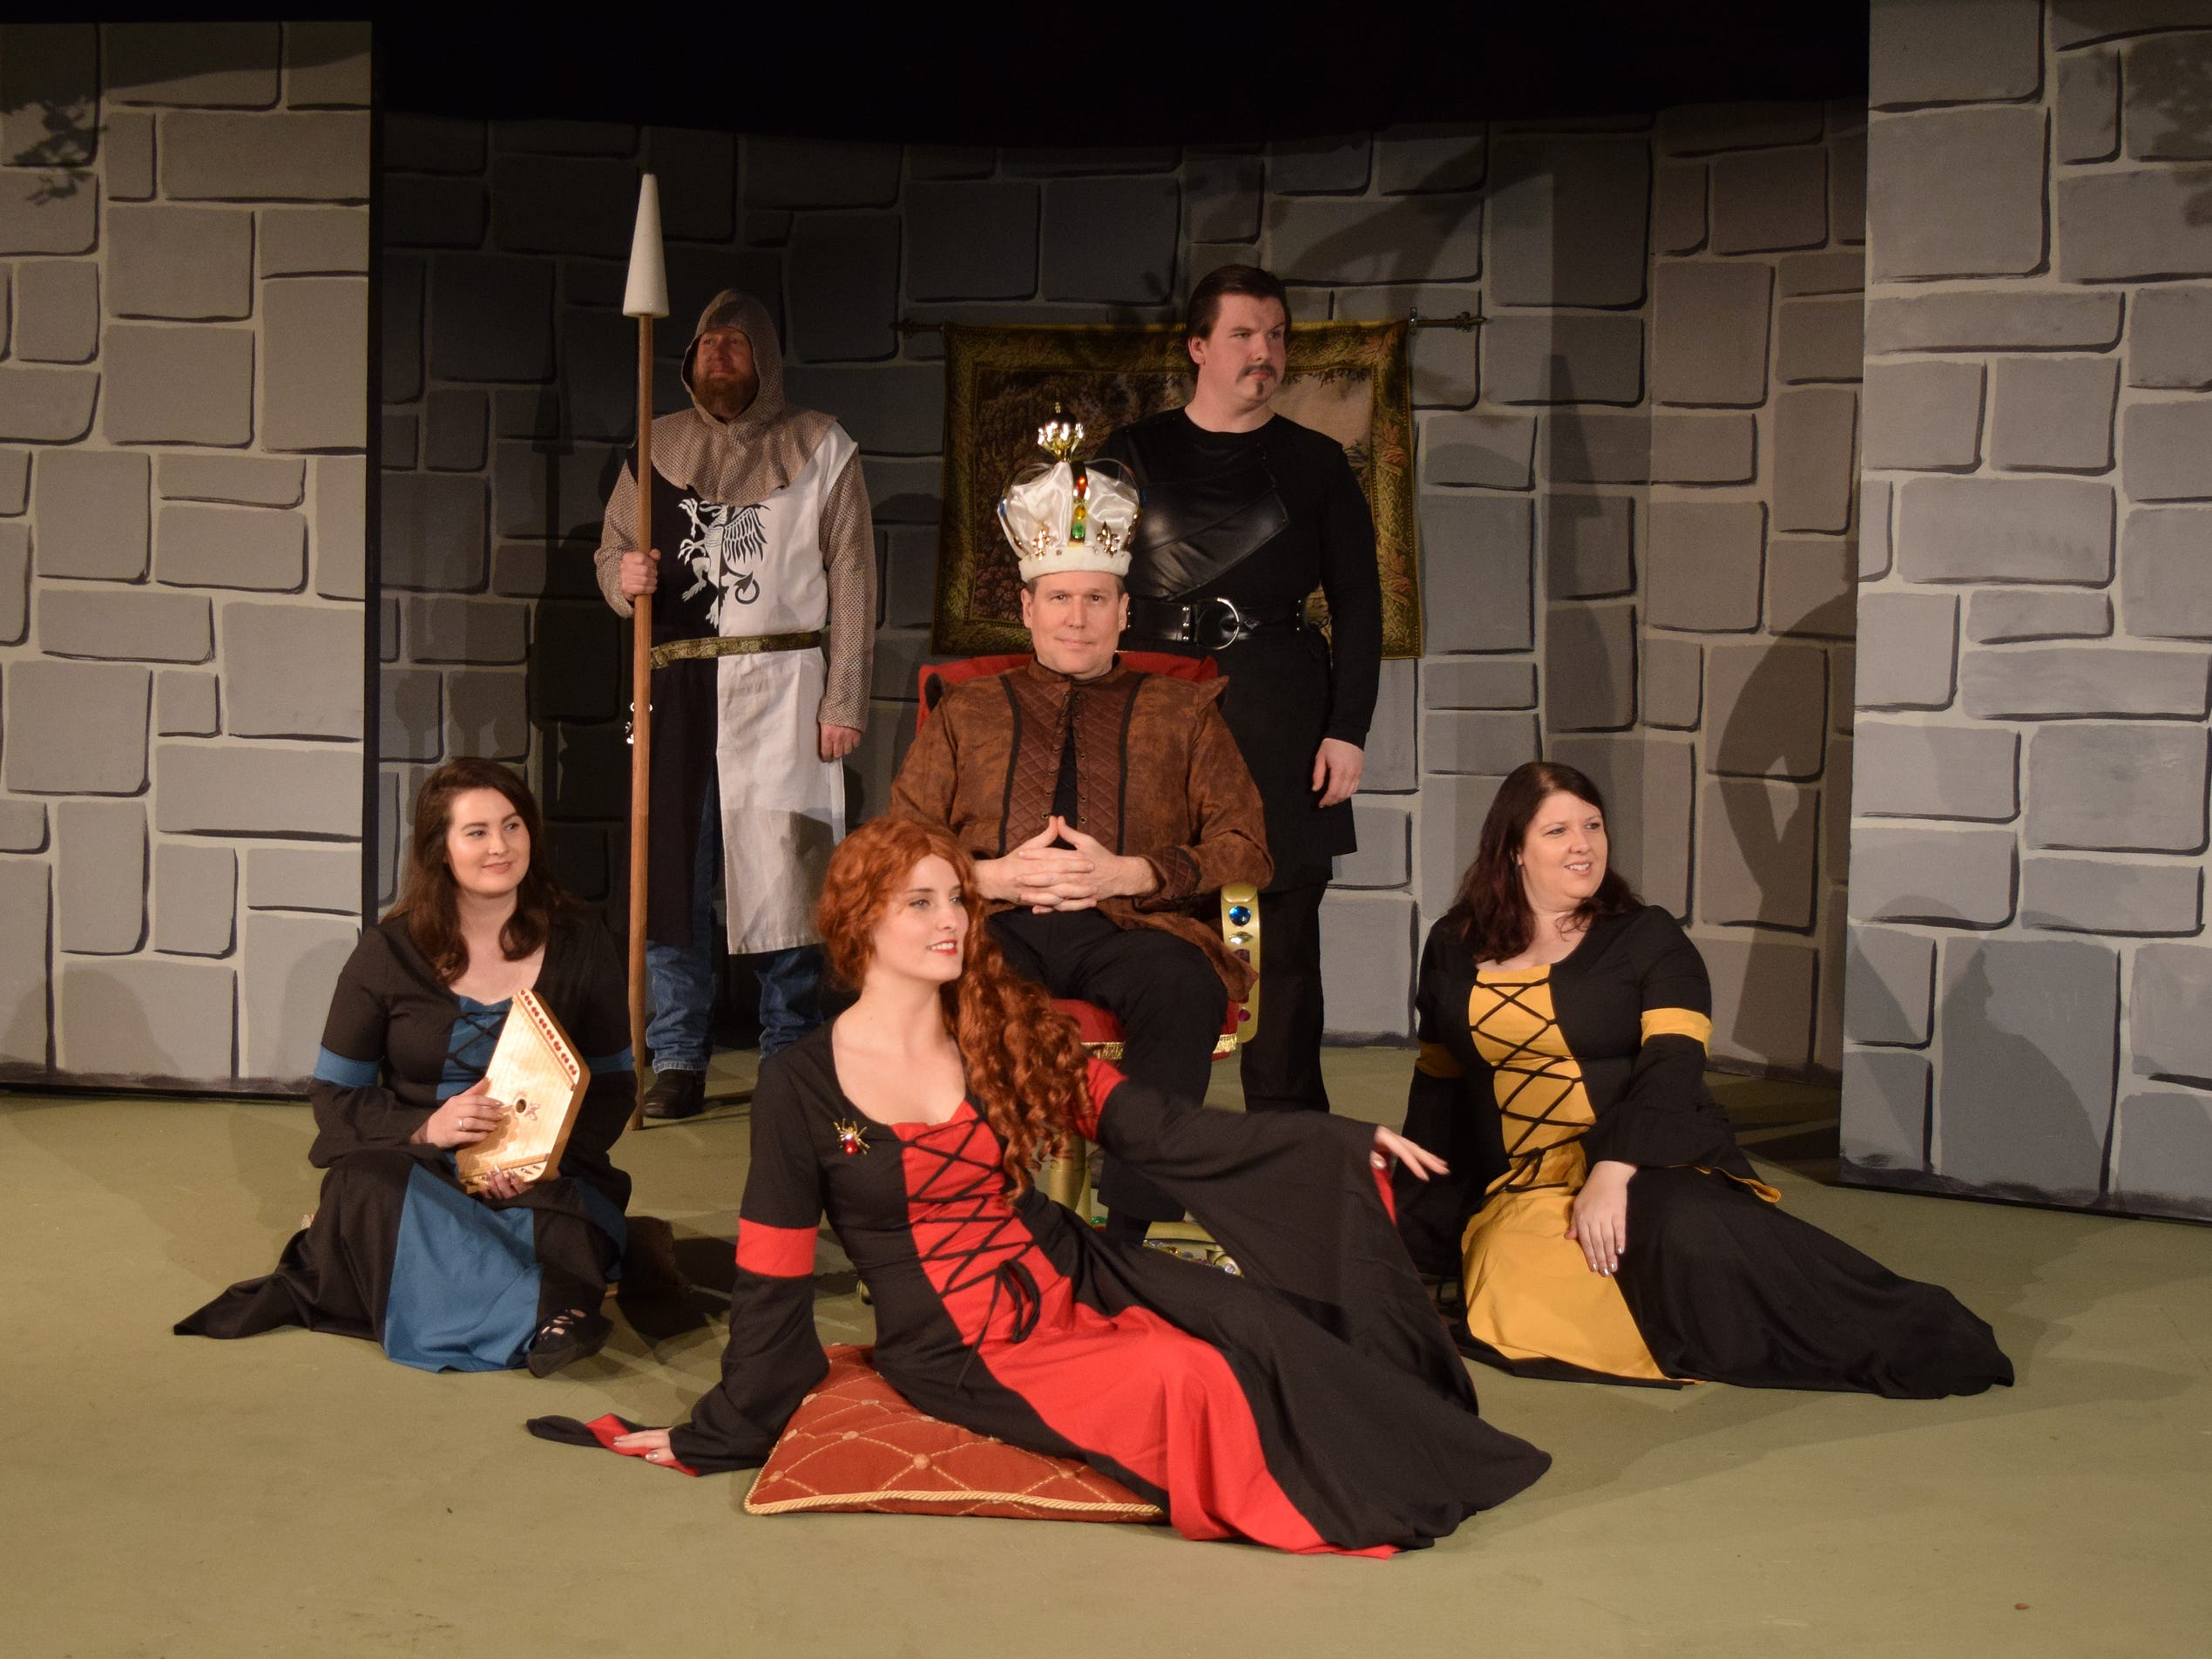 Prince John (Sean Sampson) is surrounded by the Fawning Ladies and backed by the palace guard and the Sheriff of Nottingham (Keith Rose).